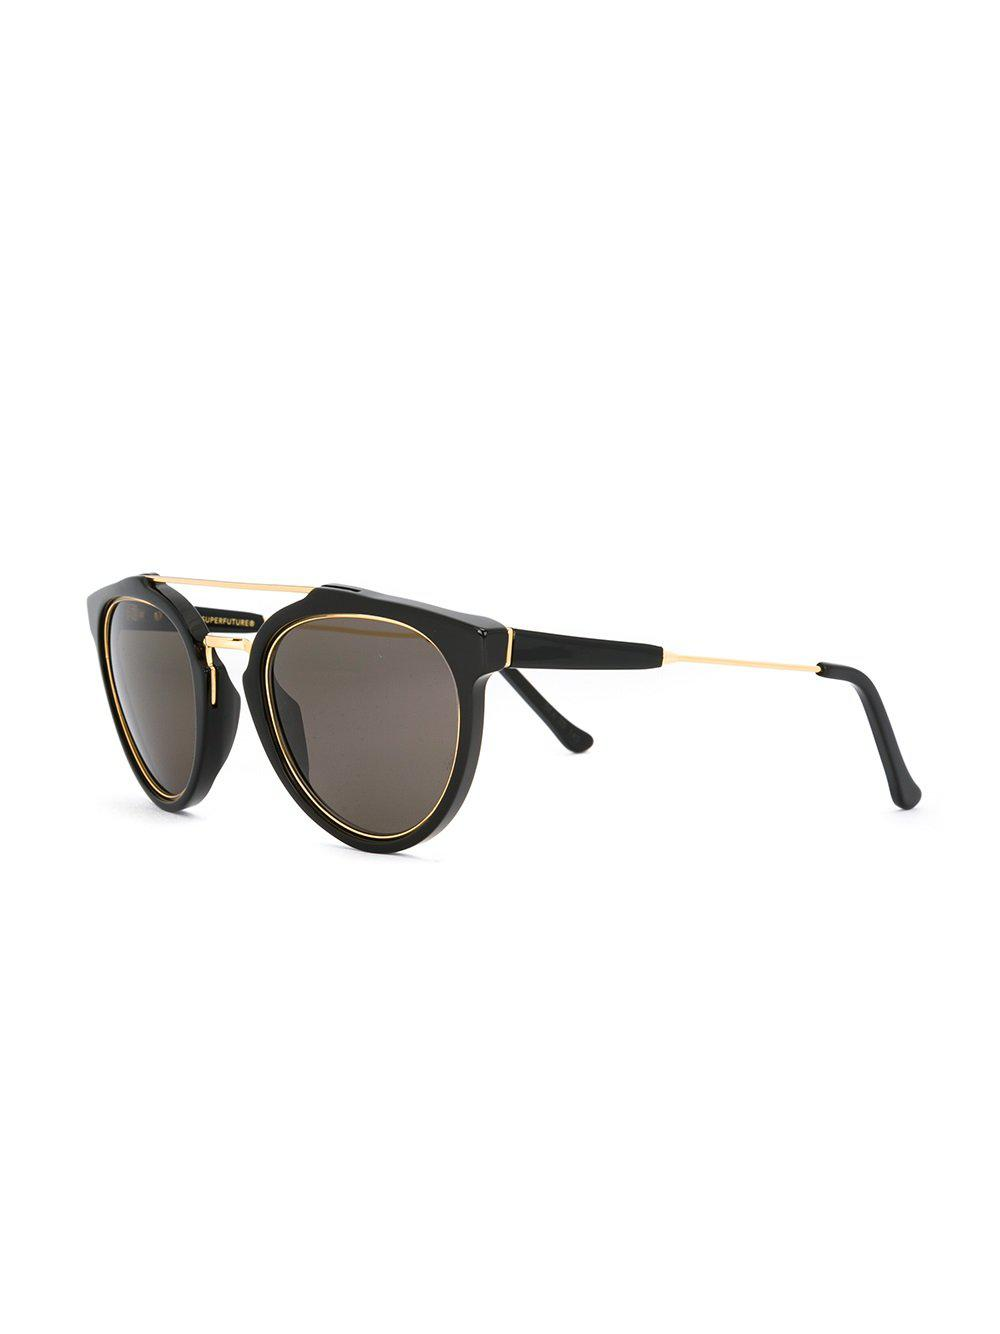 90231a7154 Lyst - Retrosuperfuture  giaguaro  Sunglasses in Black